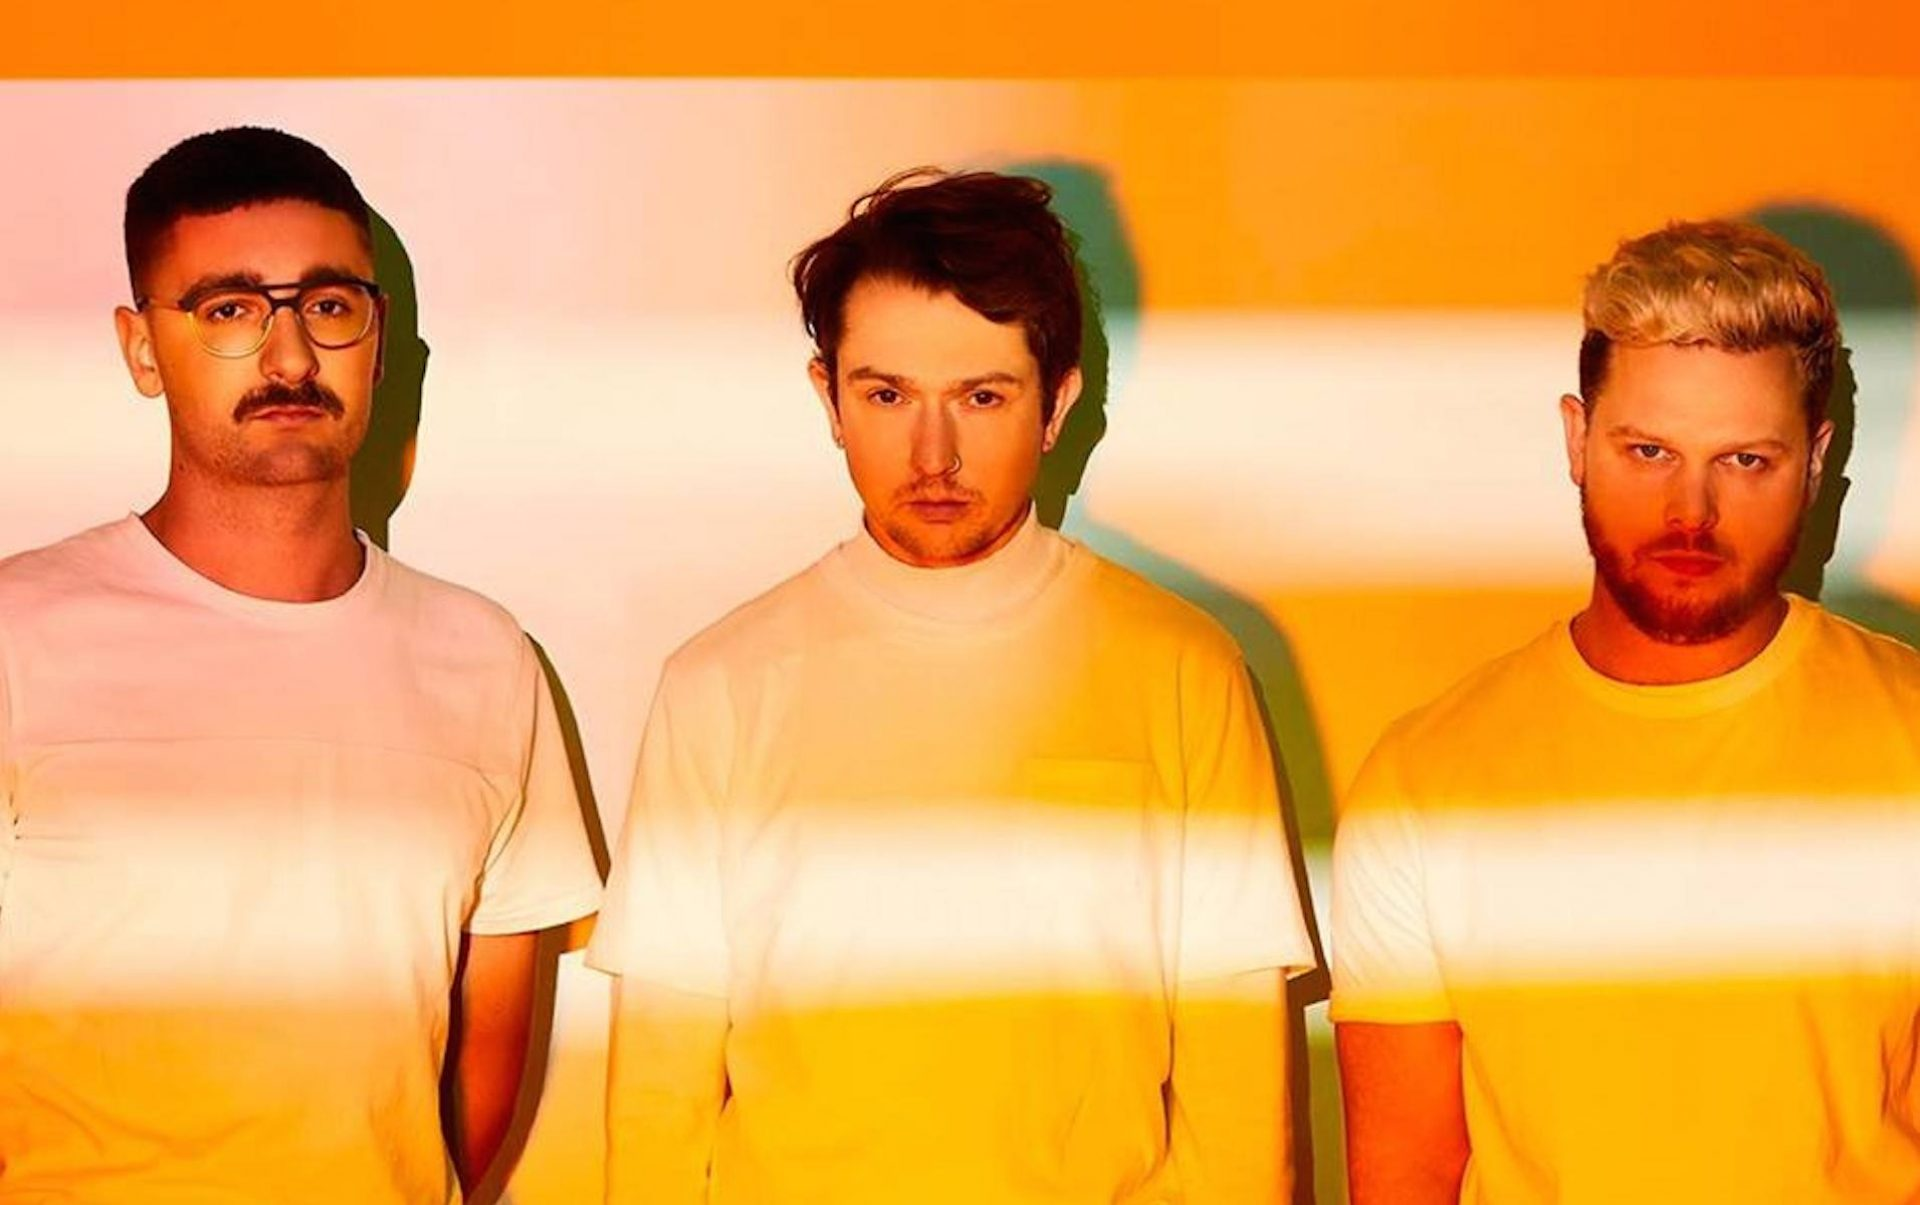 Alt-J are coming to the Olympia Theatre in Dublin